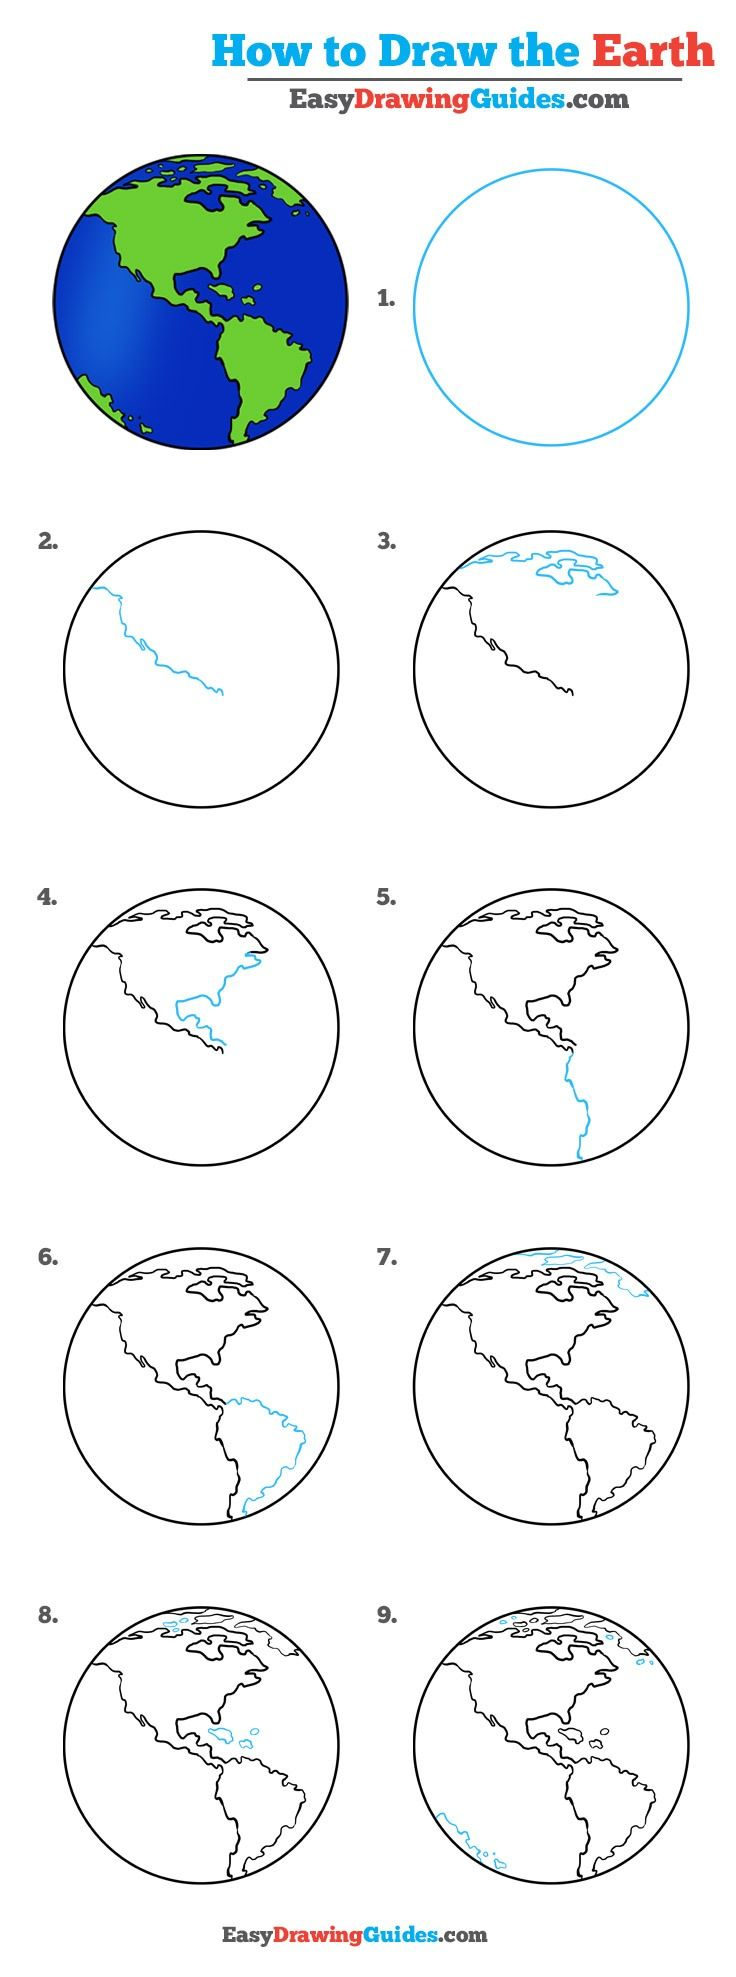 Learn How to Draw the Earth: Easy Step-by-Step Drawing Tutorial for Kids and Beginners. #Earth #drawingtutorial #easydrawing See the full tutorial at https://easydrawingguides.com/draw-earth-really-easy-drawing-tutorial/.